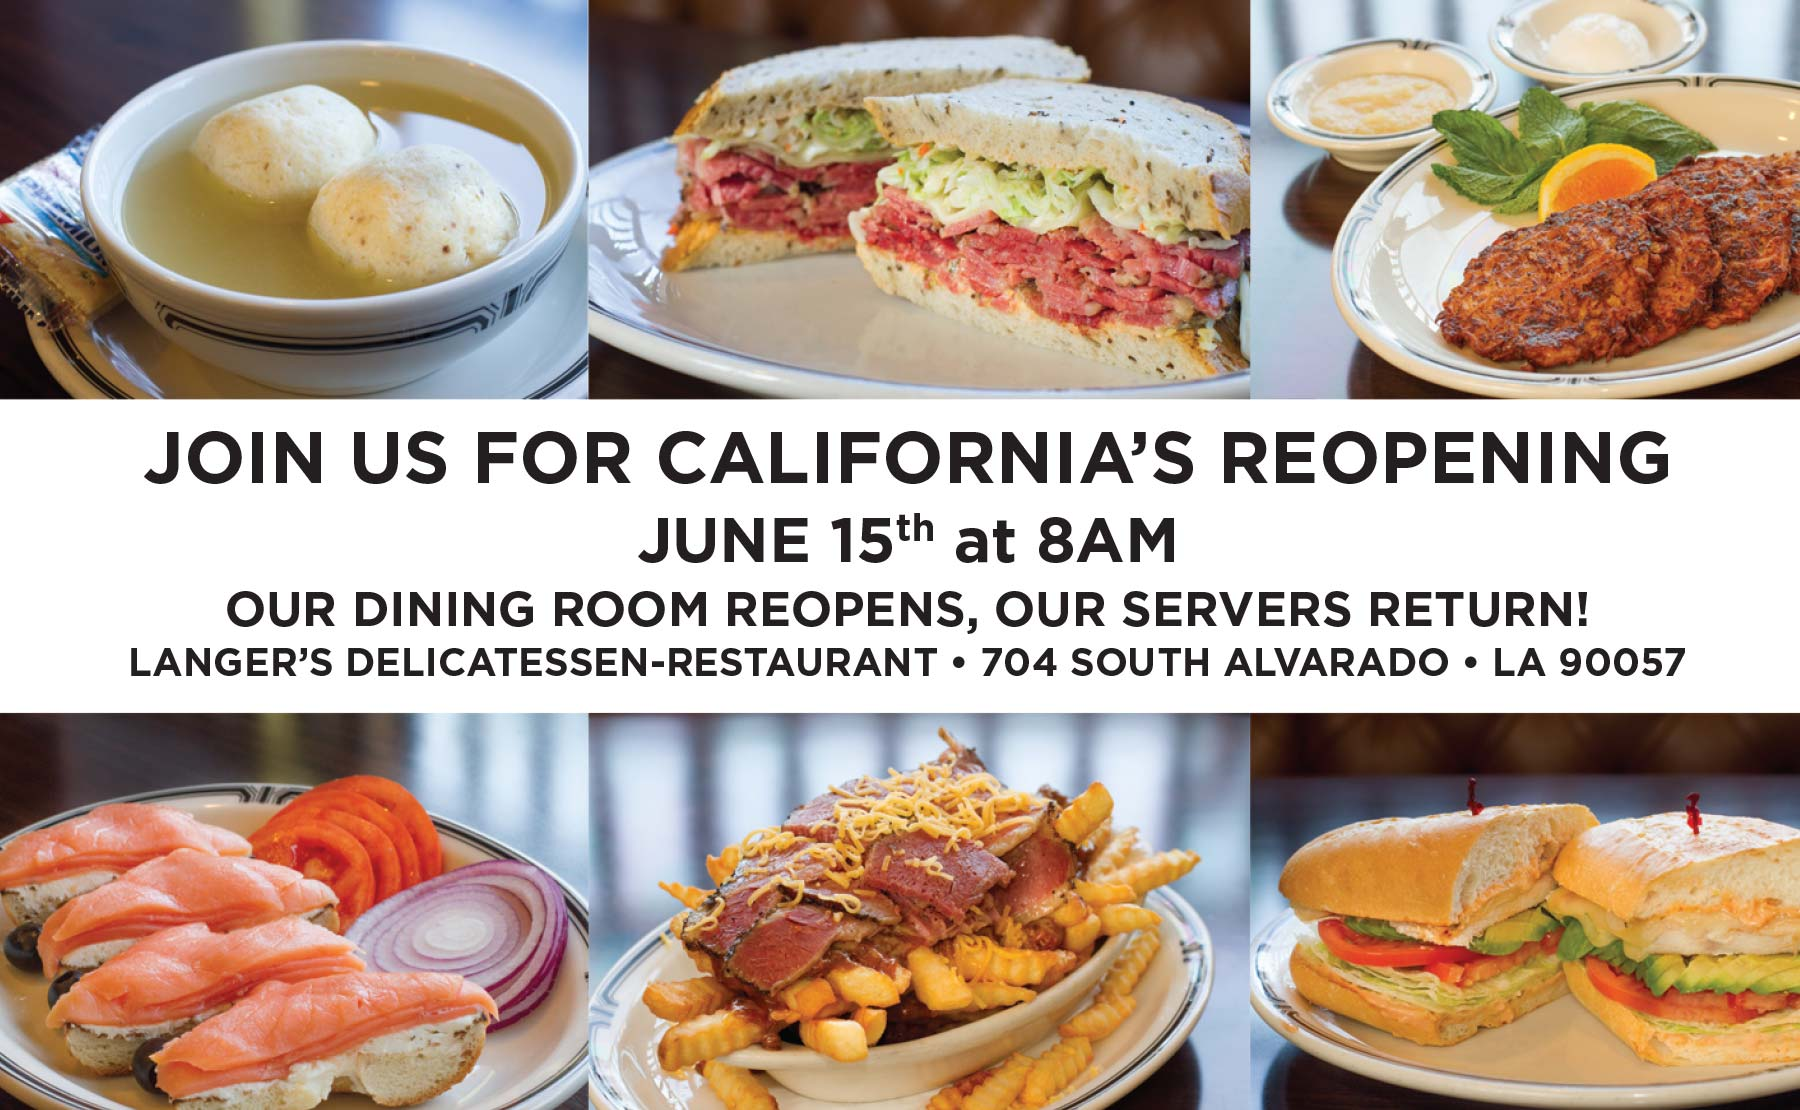 An image announcing Langer's reopening on June 15, 2021, including images of popular menu items